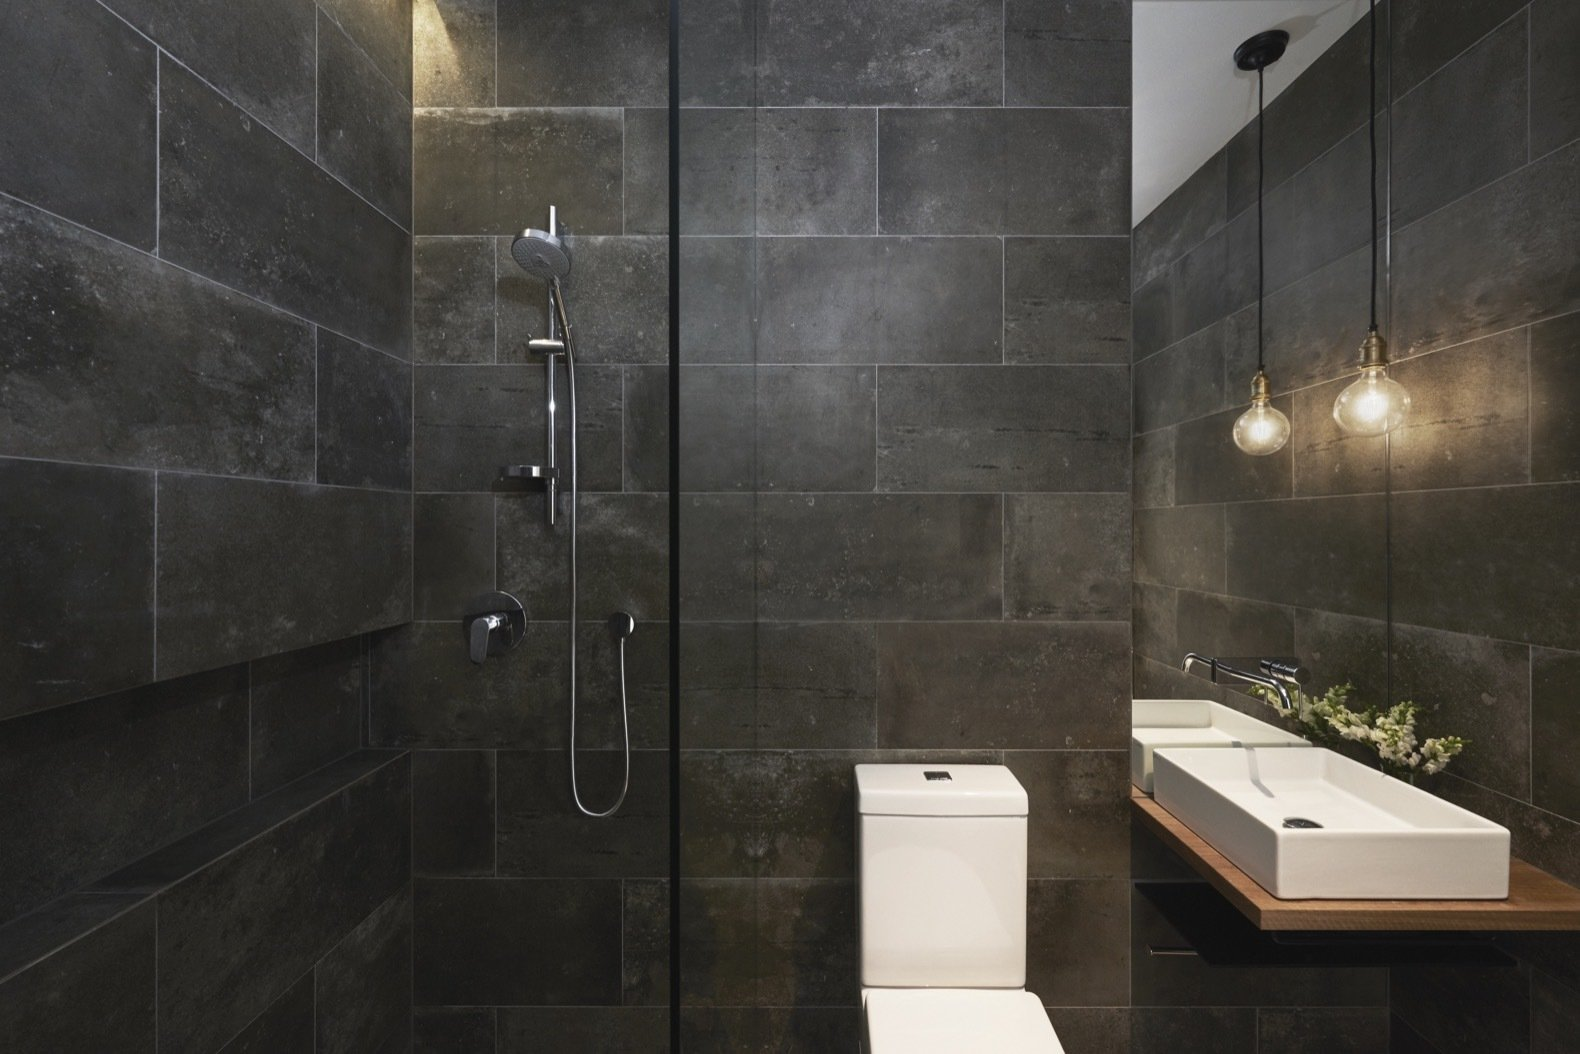 Platform House bathroom